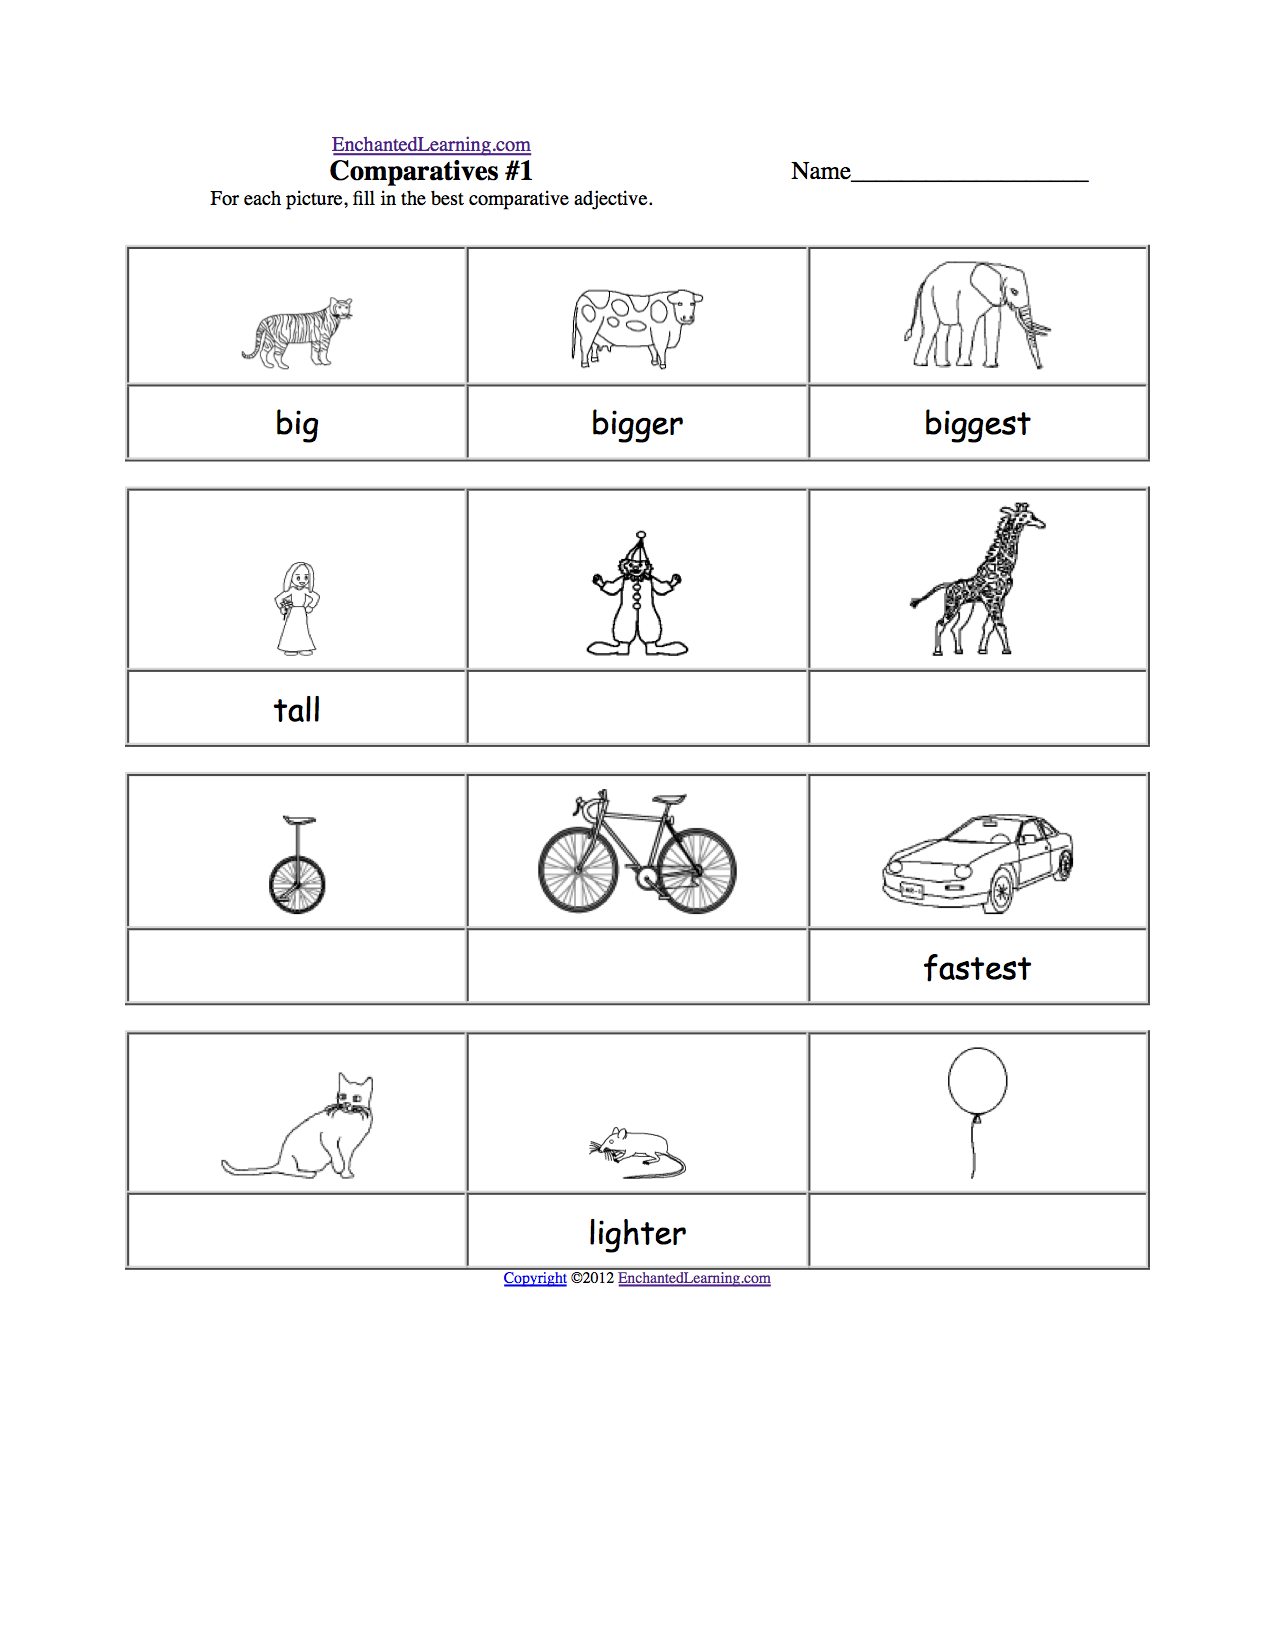 Aldiablosus  Pleasant Adjective Activities And Worksheets Enchantedlearningcom With Entrancing Worksheets On Addition Besides Find The Adverb Worksheet Furthermore Basic Angles Worksheet With Nice Angles In Shapes Worksheet Also Worksheet On Trigonometric Ratios In Addition Daily Paragraph Editing Worksheets And Math Venn Diagram Worksheet As Well As Numbers  To  Worksheets Additionally Synonyms Antonyms And Homonyms Worksheets From Enchantedlearningcom With Aldiablosus  Entrancing Adjective Activities And Worksheets Enchantedlearningcom With Nice Worksheets On Addition Besides Find The Adverb Worksheet Furthermore Basic Angles Worksheet And Pleasant Angles In Shapes Worksheet Also Worksheet On Trigonometric Ratios In Addition Daily Paragraph Editing Worksheets From Enchantedlearningcom